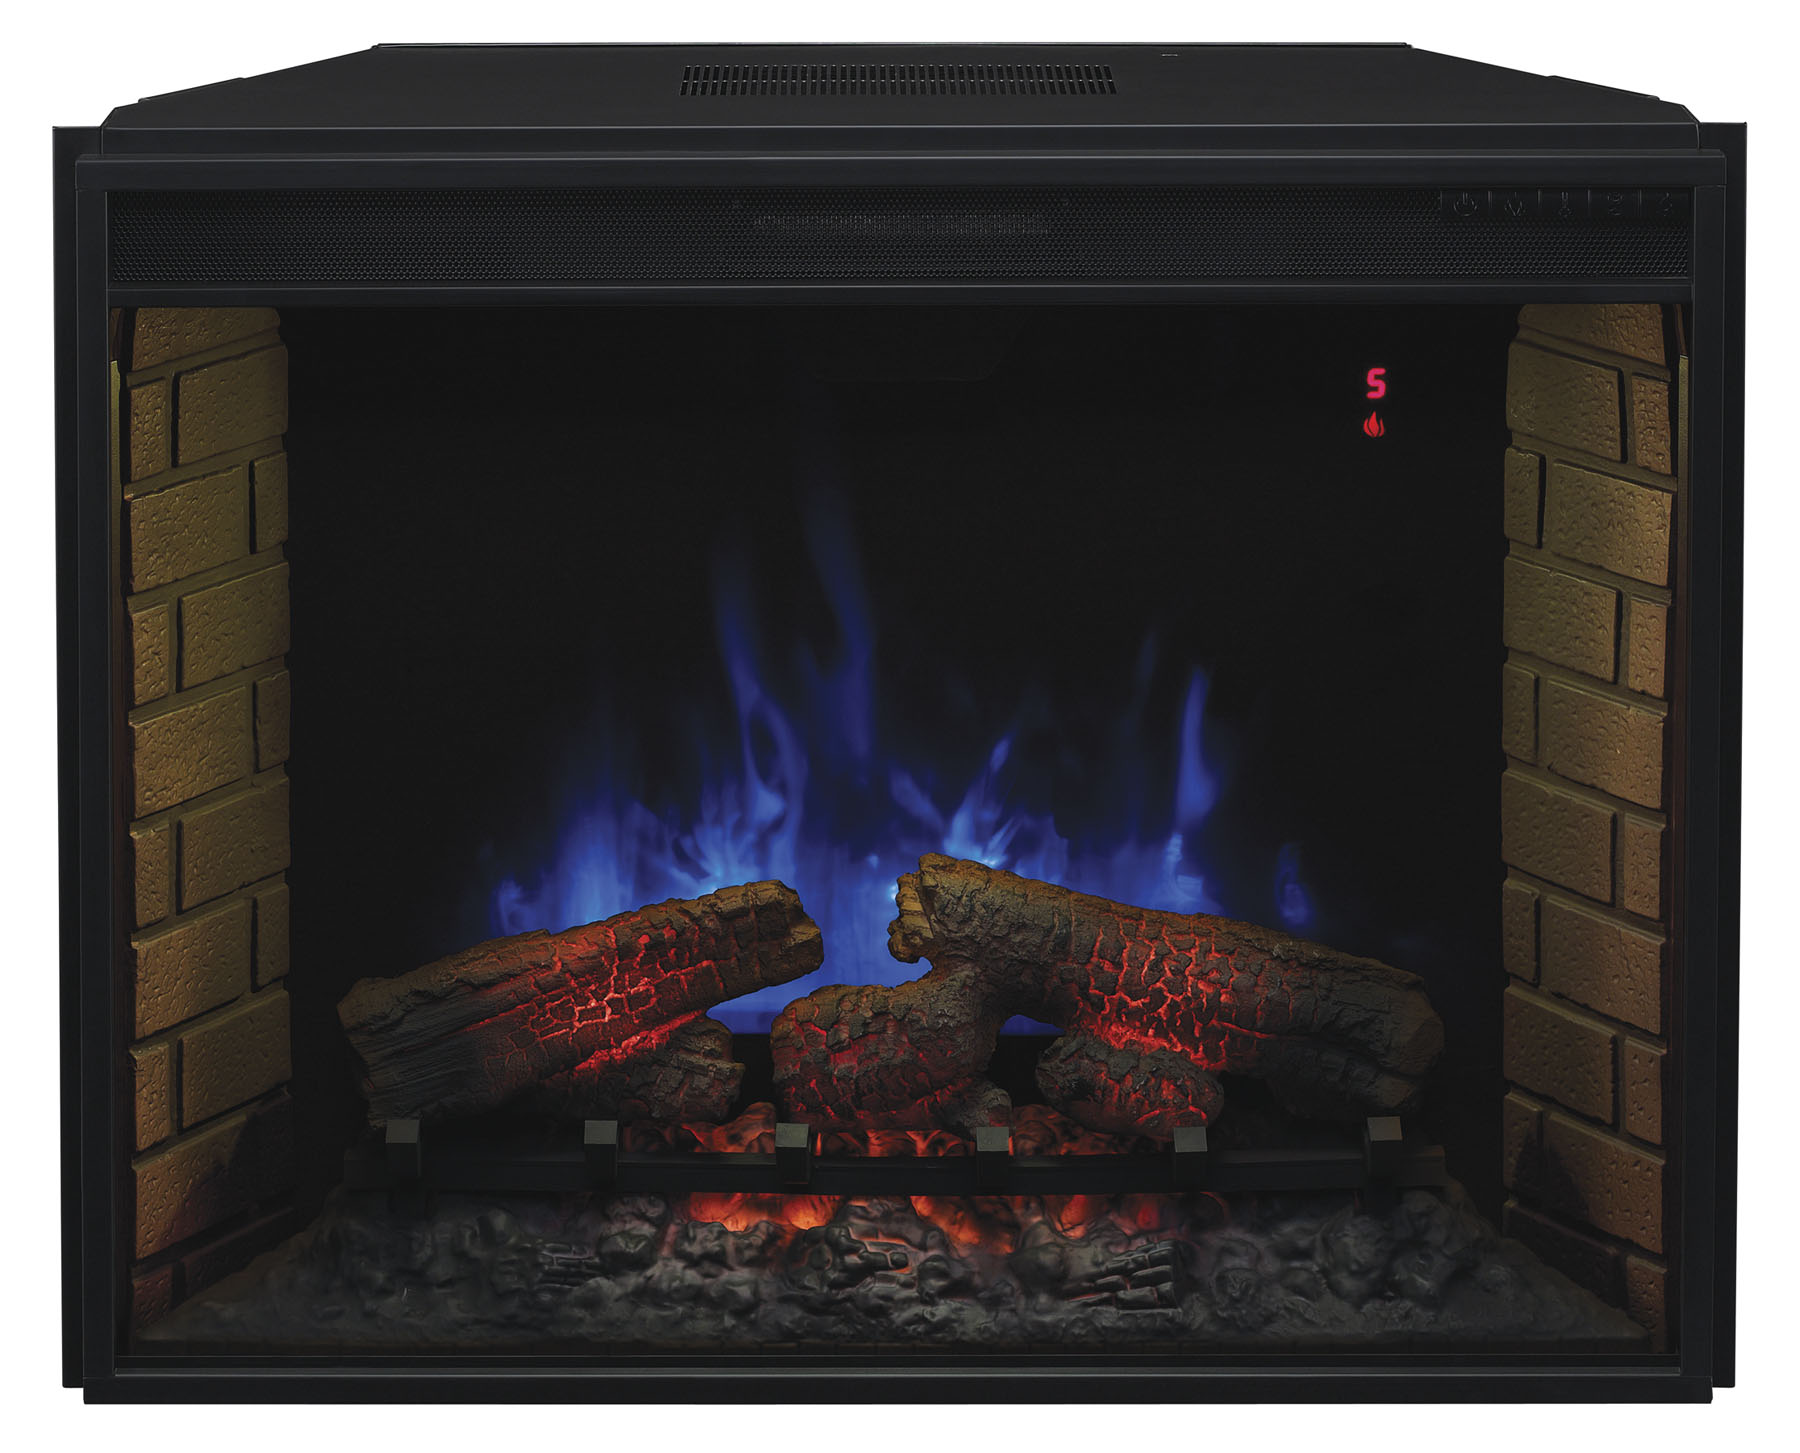 Chimenea electrica classic flame insert spectrafire 3d 33 - Chimeneas electricas insertables ...